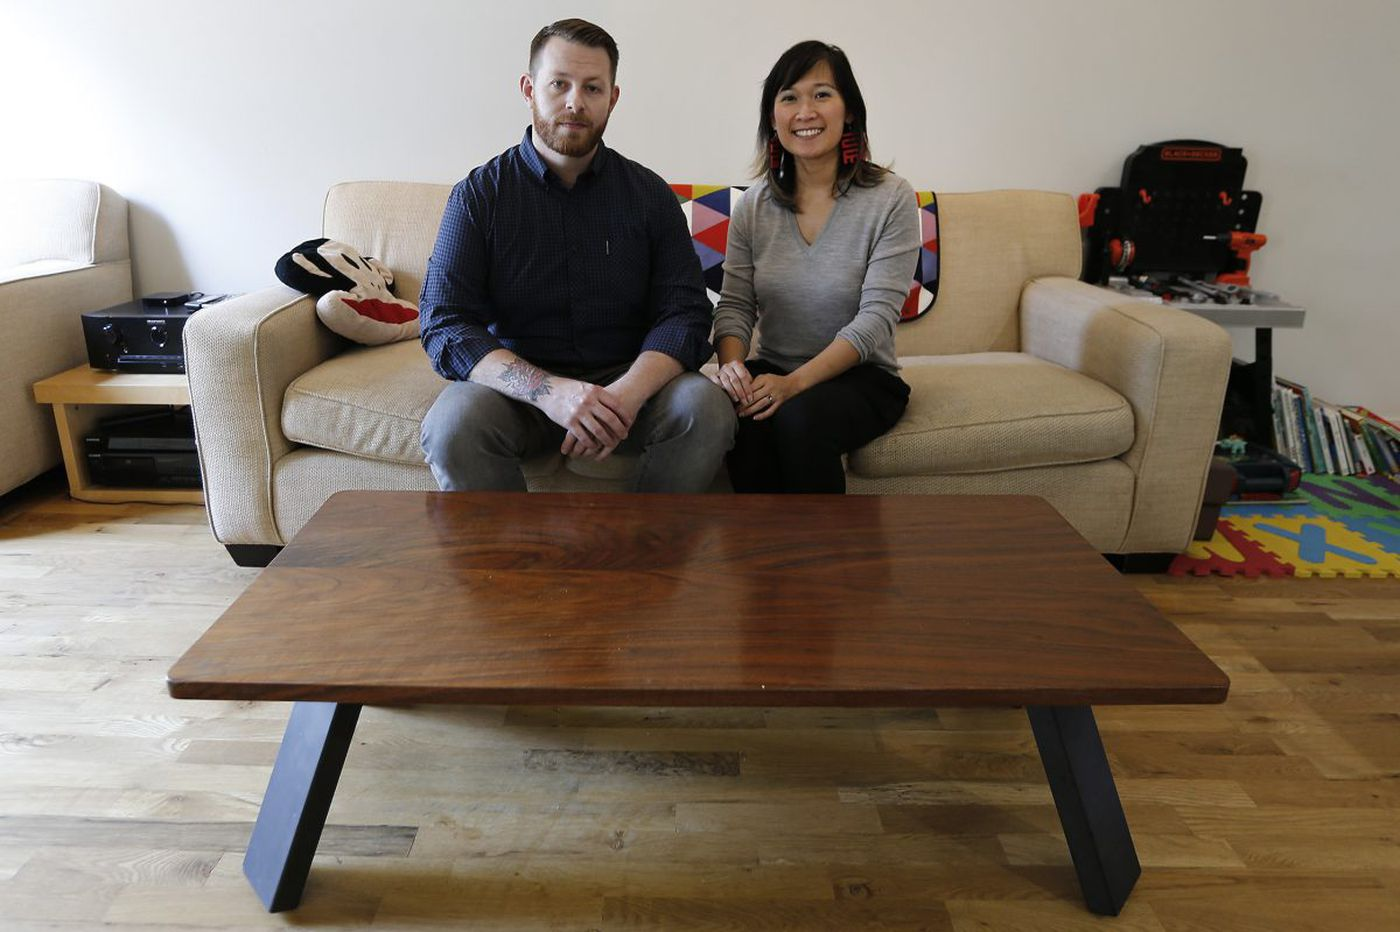 Relocated New Yorkers find space and kinship in East Kensington